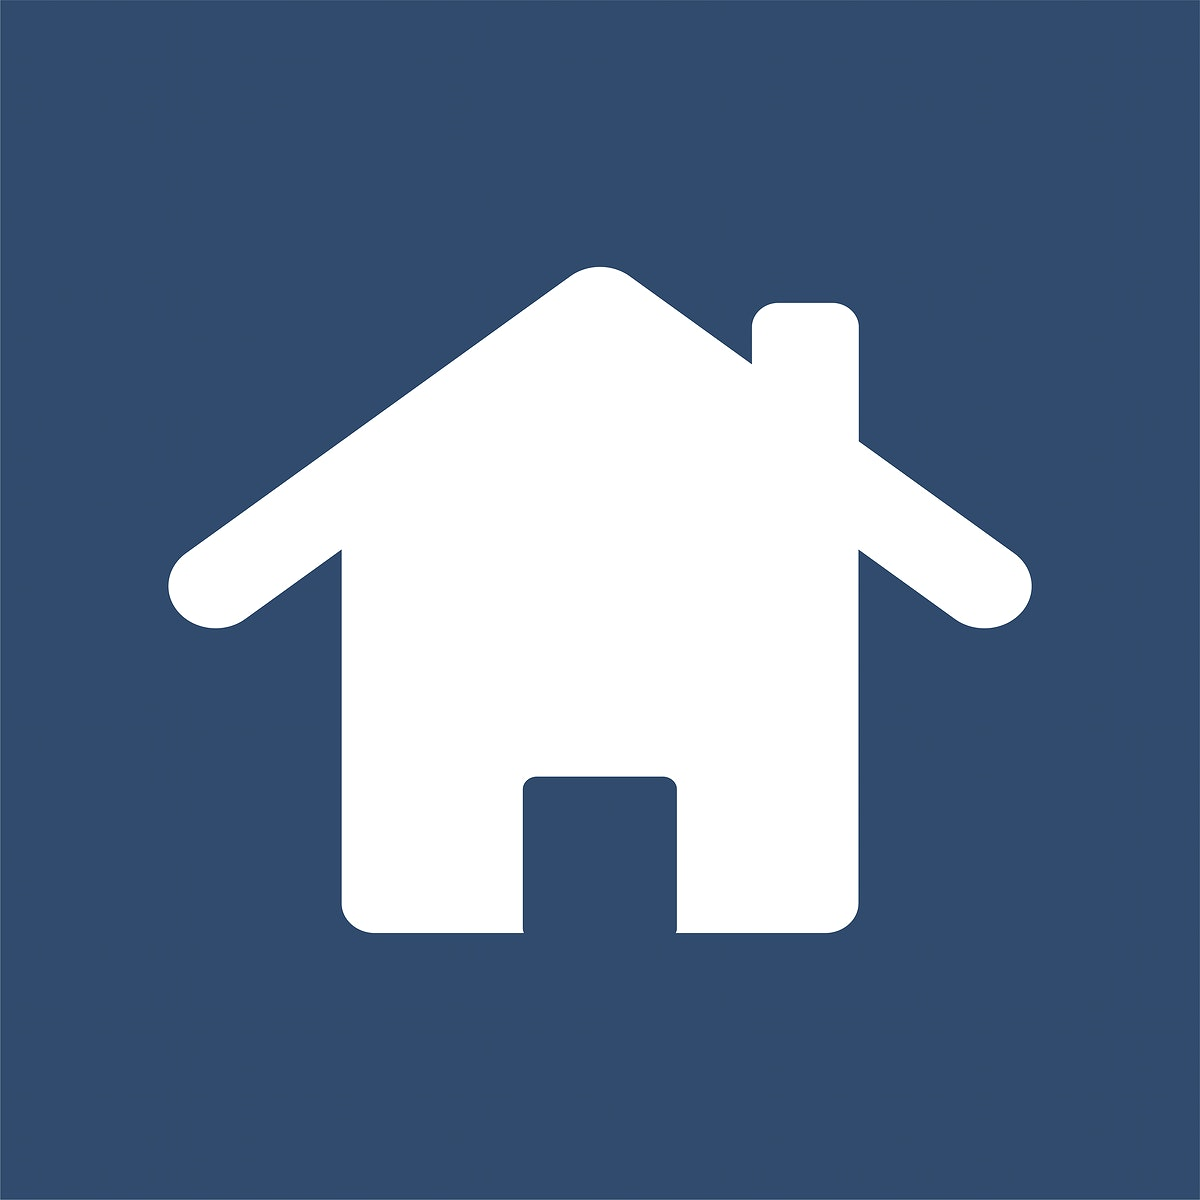 Isolated white home icon on blue background